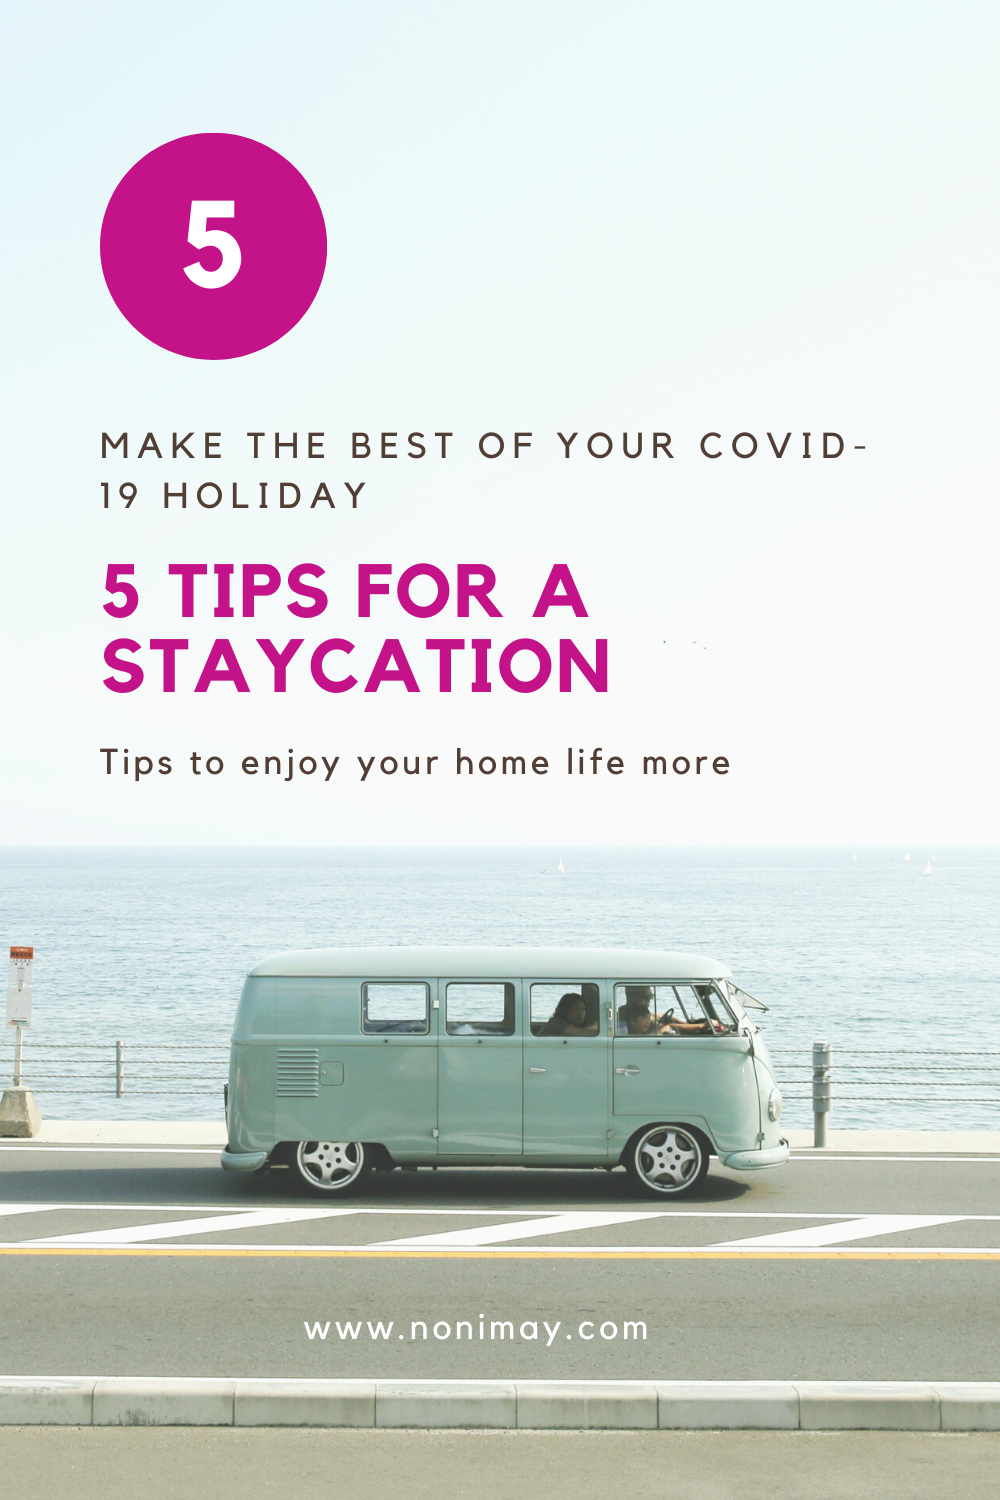 5 tips for a staycation